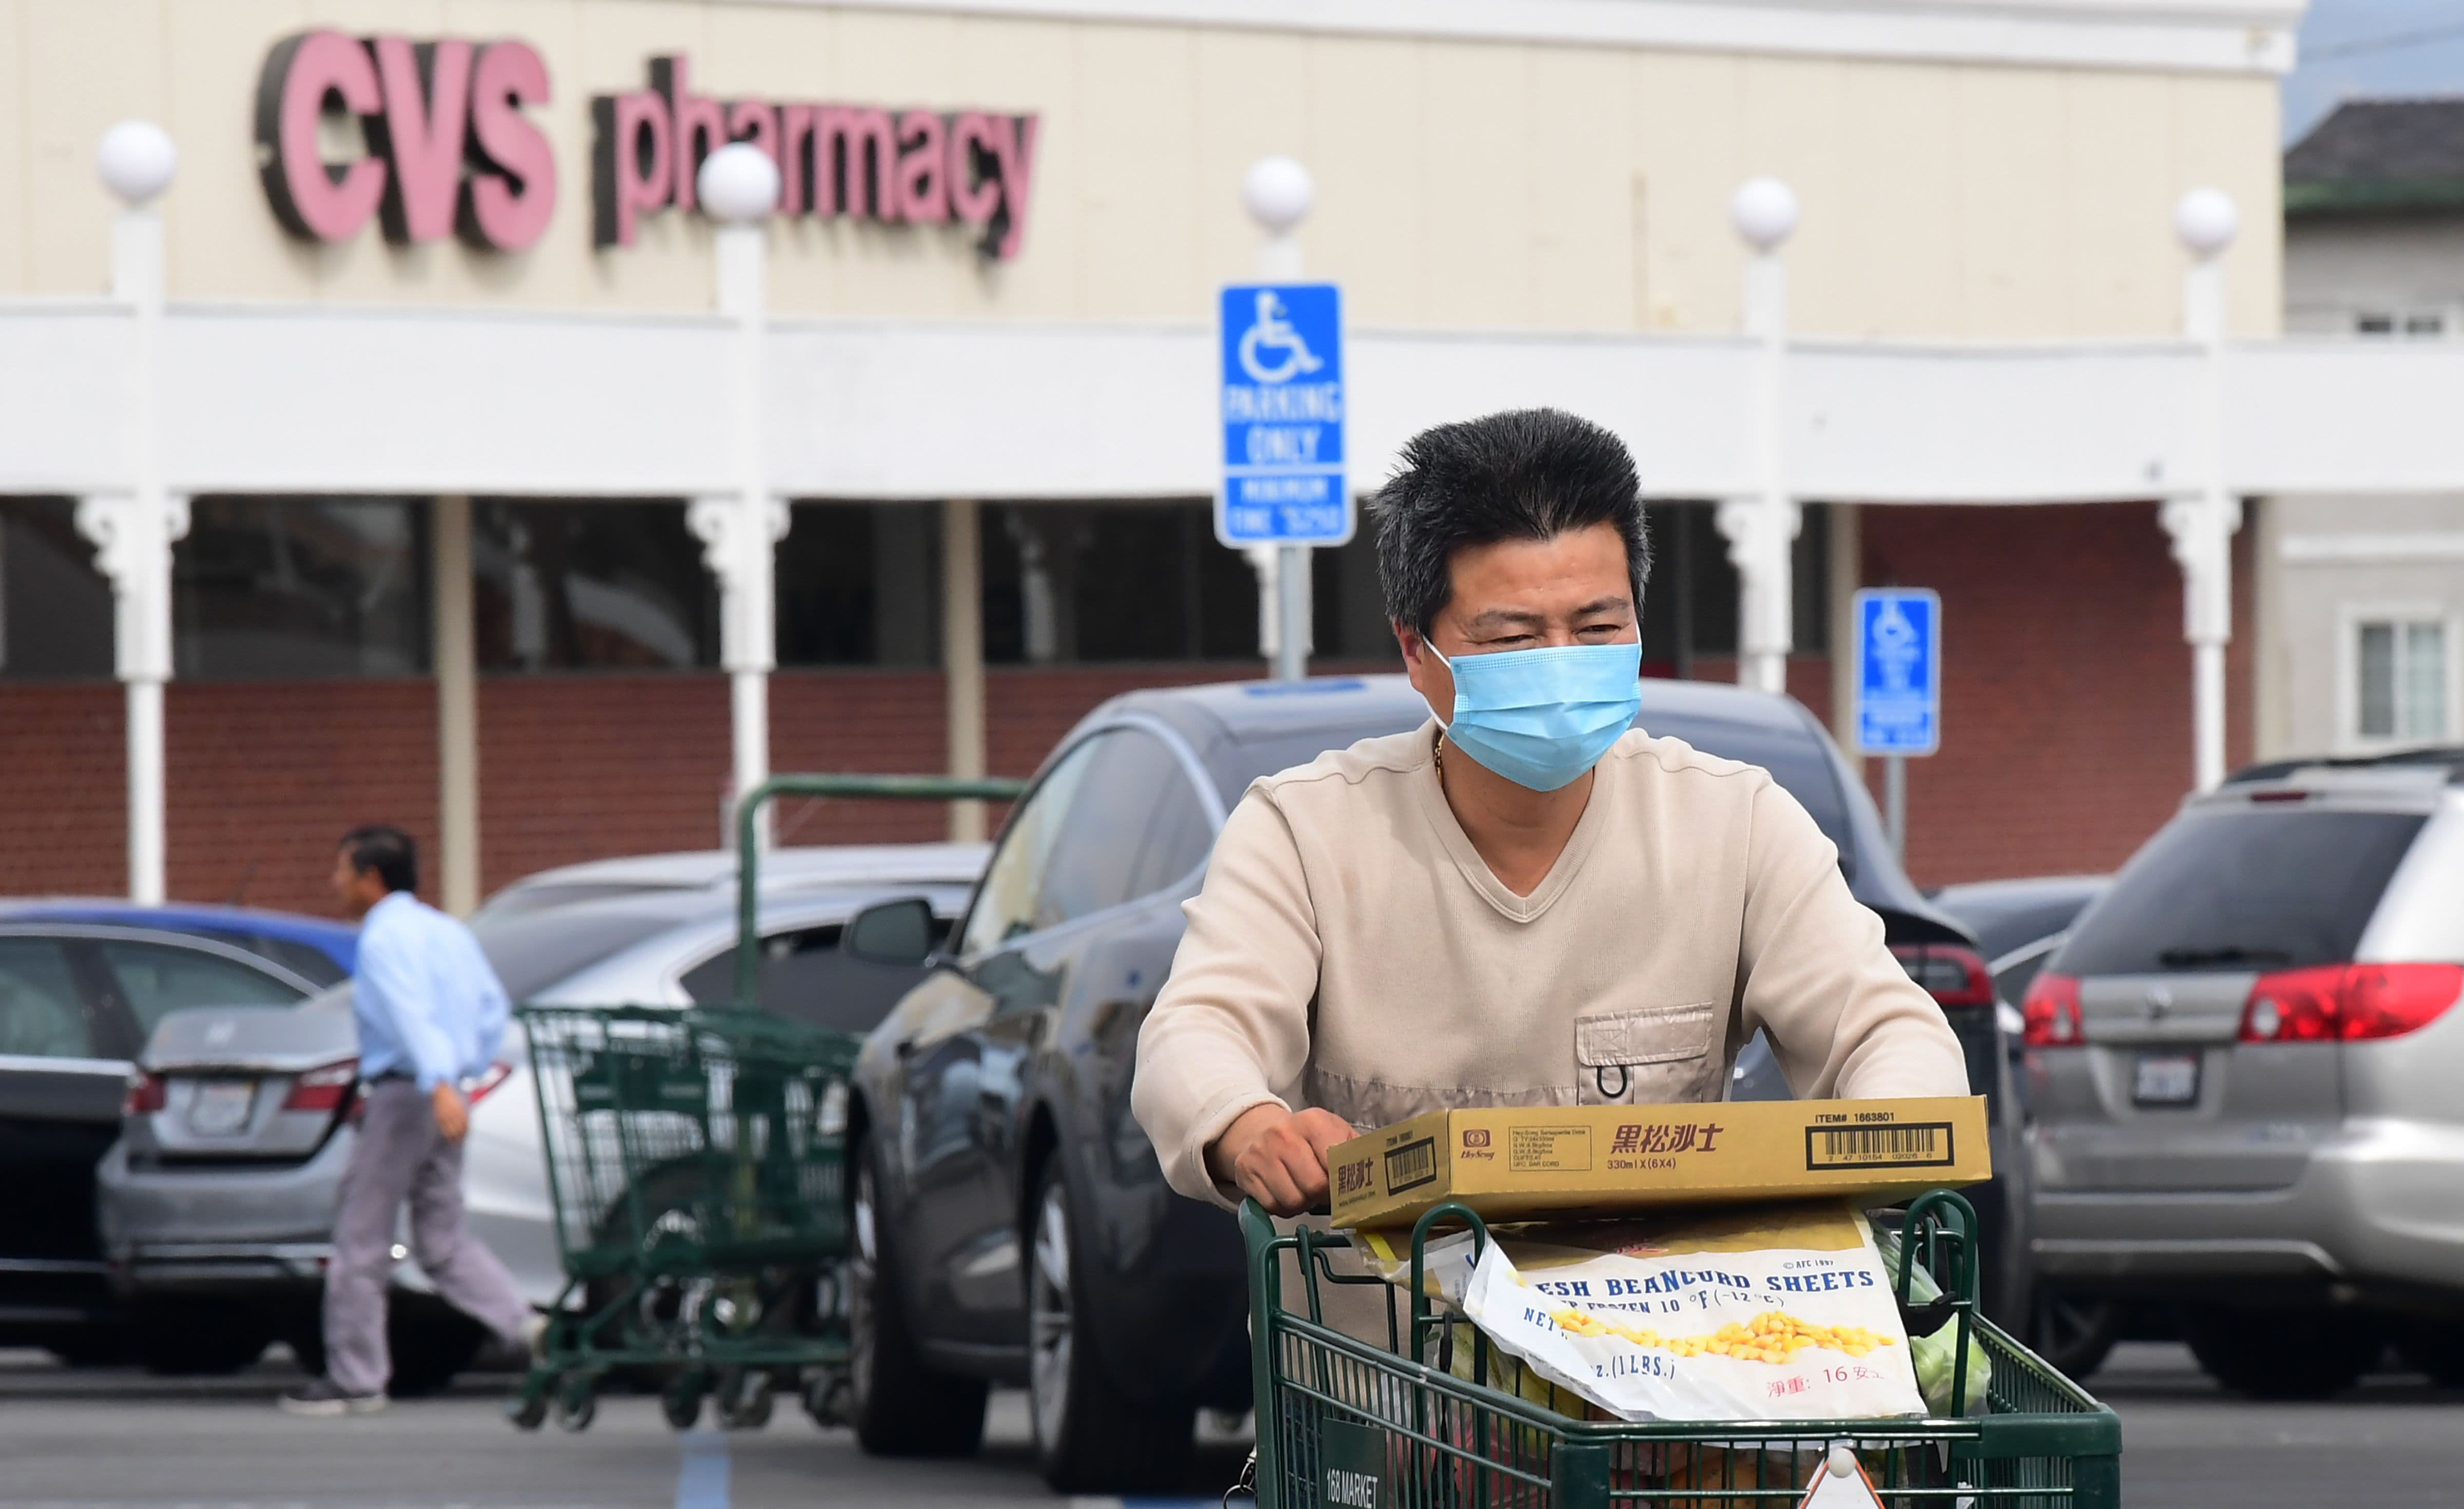 Don't 'waste your money' on masks, says doctor: If you're worried about coronavirus, here's what to buy